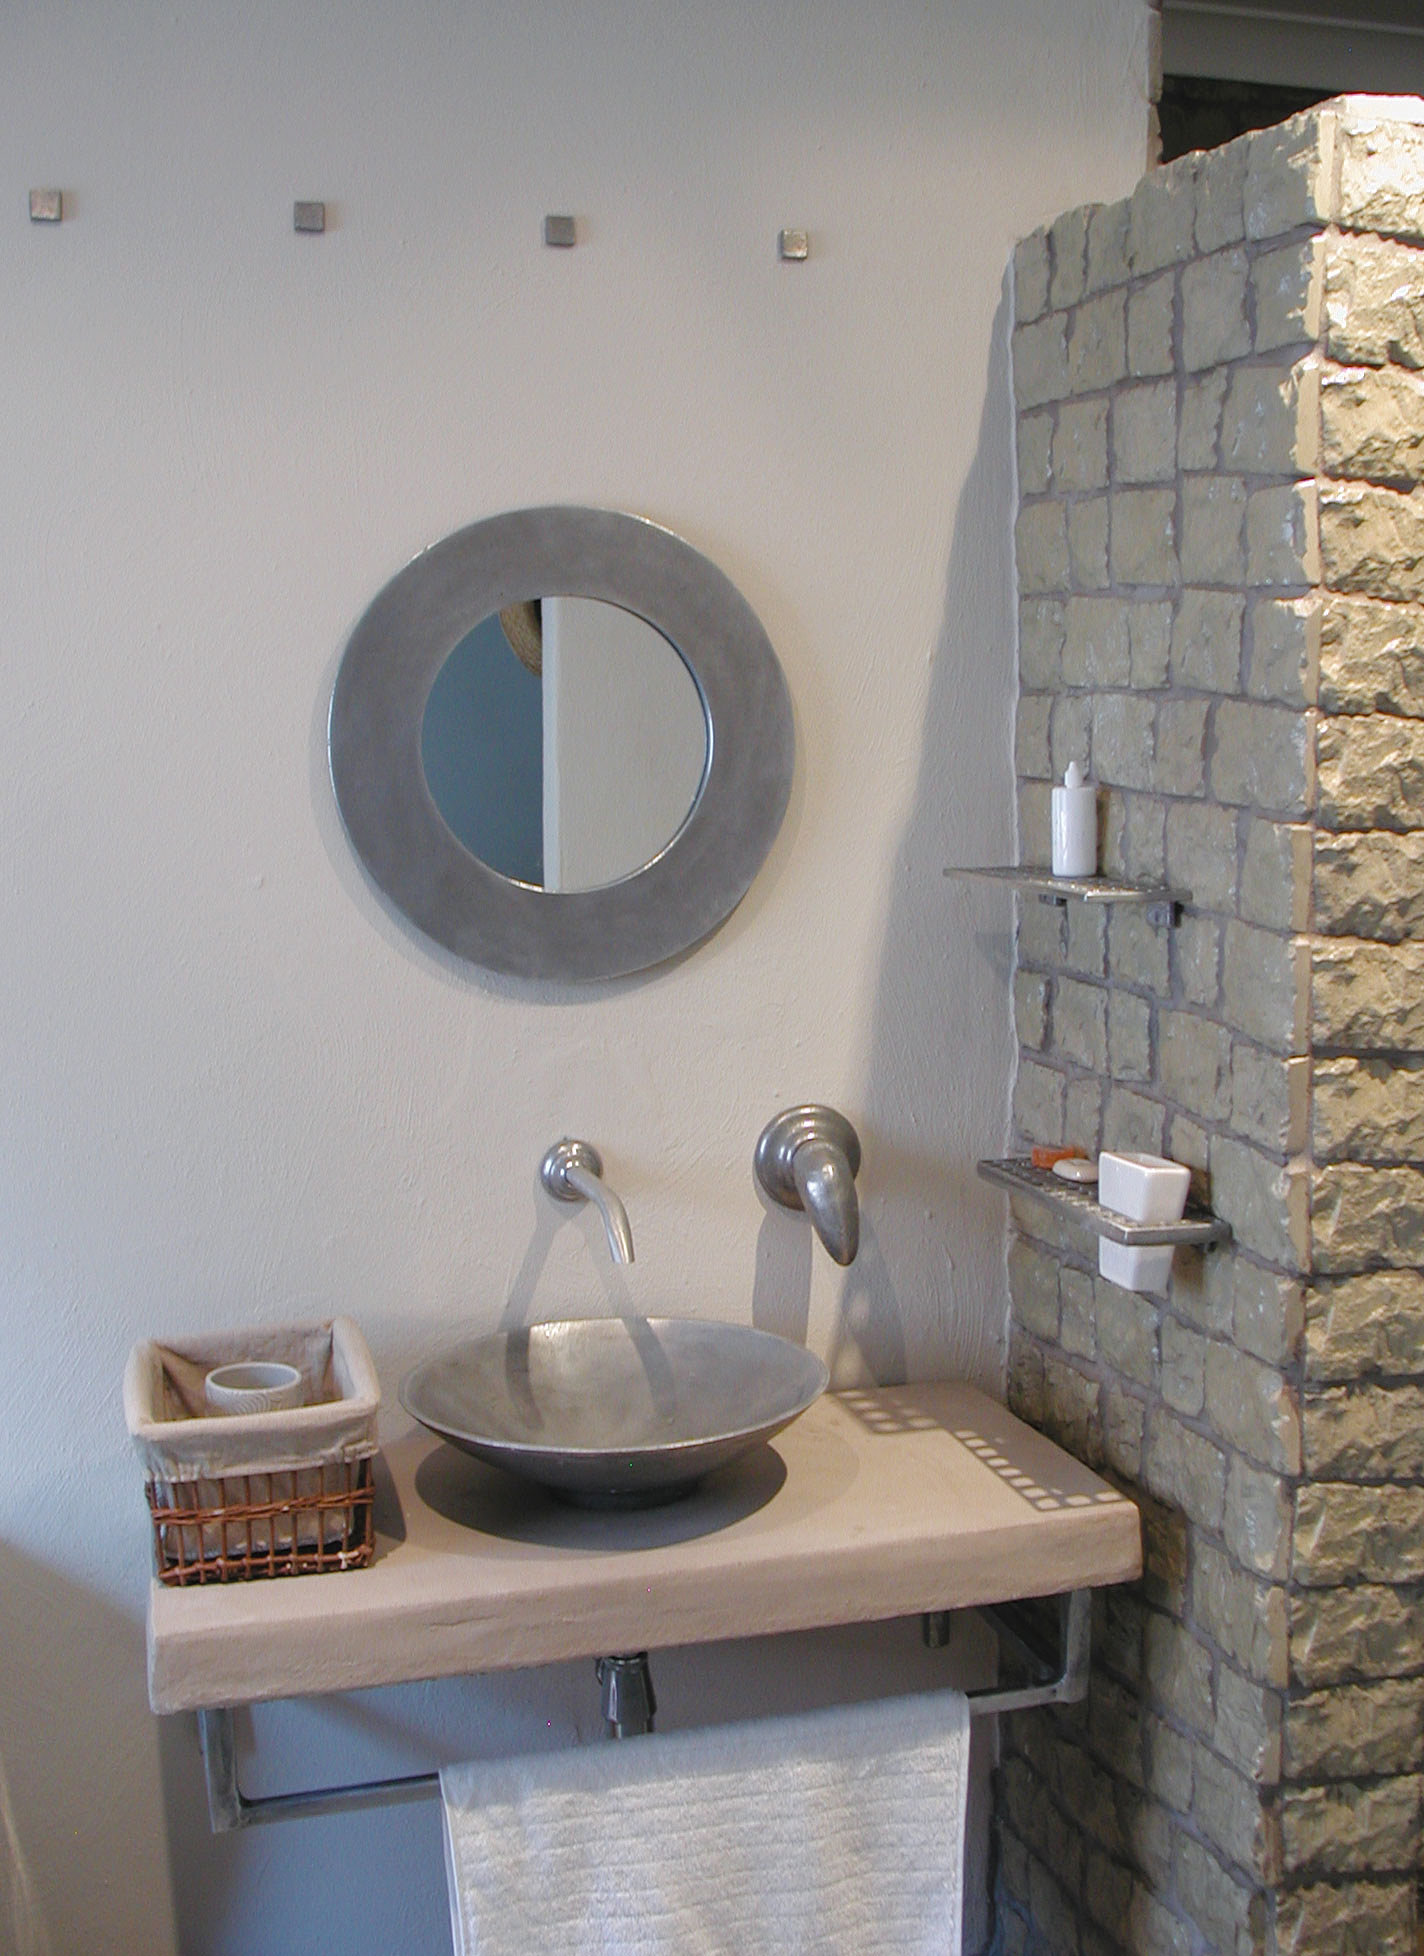 Bathroom Accessories Fixtures Ironwood Creations Rustic Concrete And Brick